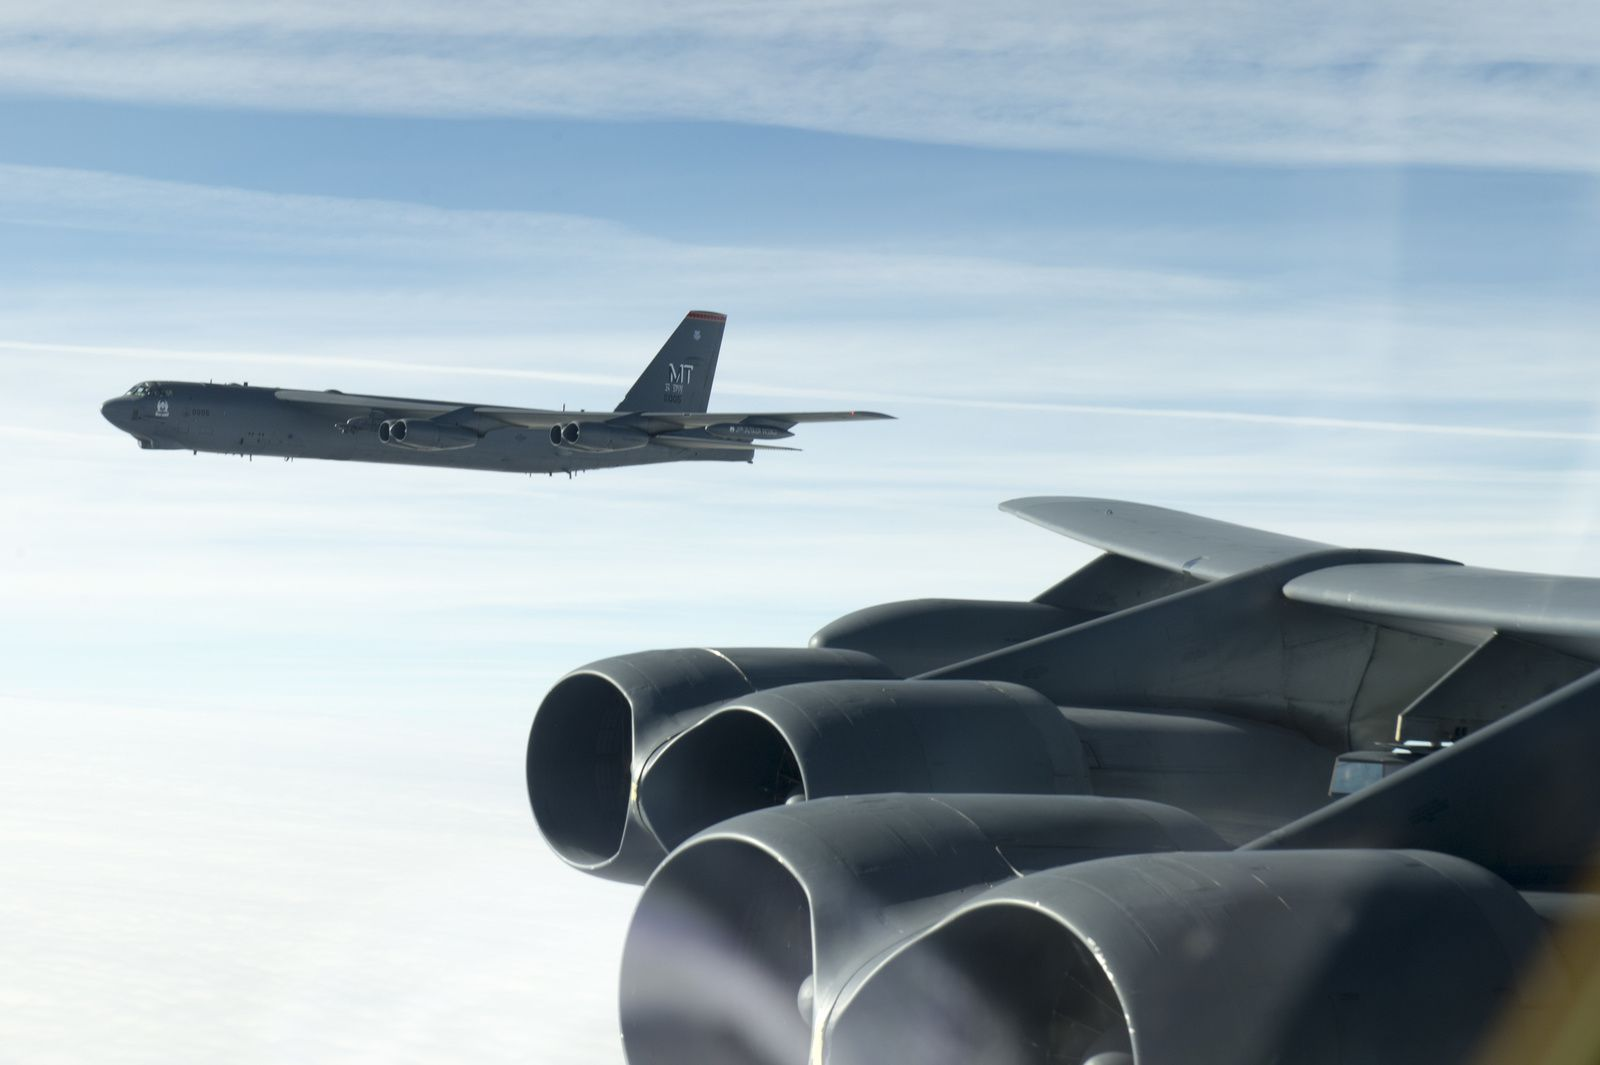 PHOTOS - Un Rafale M intercepte des B-52H Stratofortress de l'US Air Force